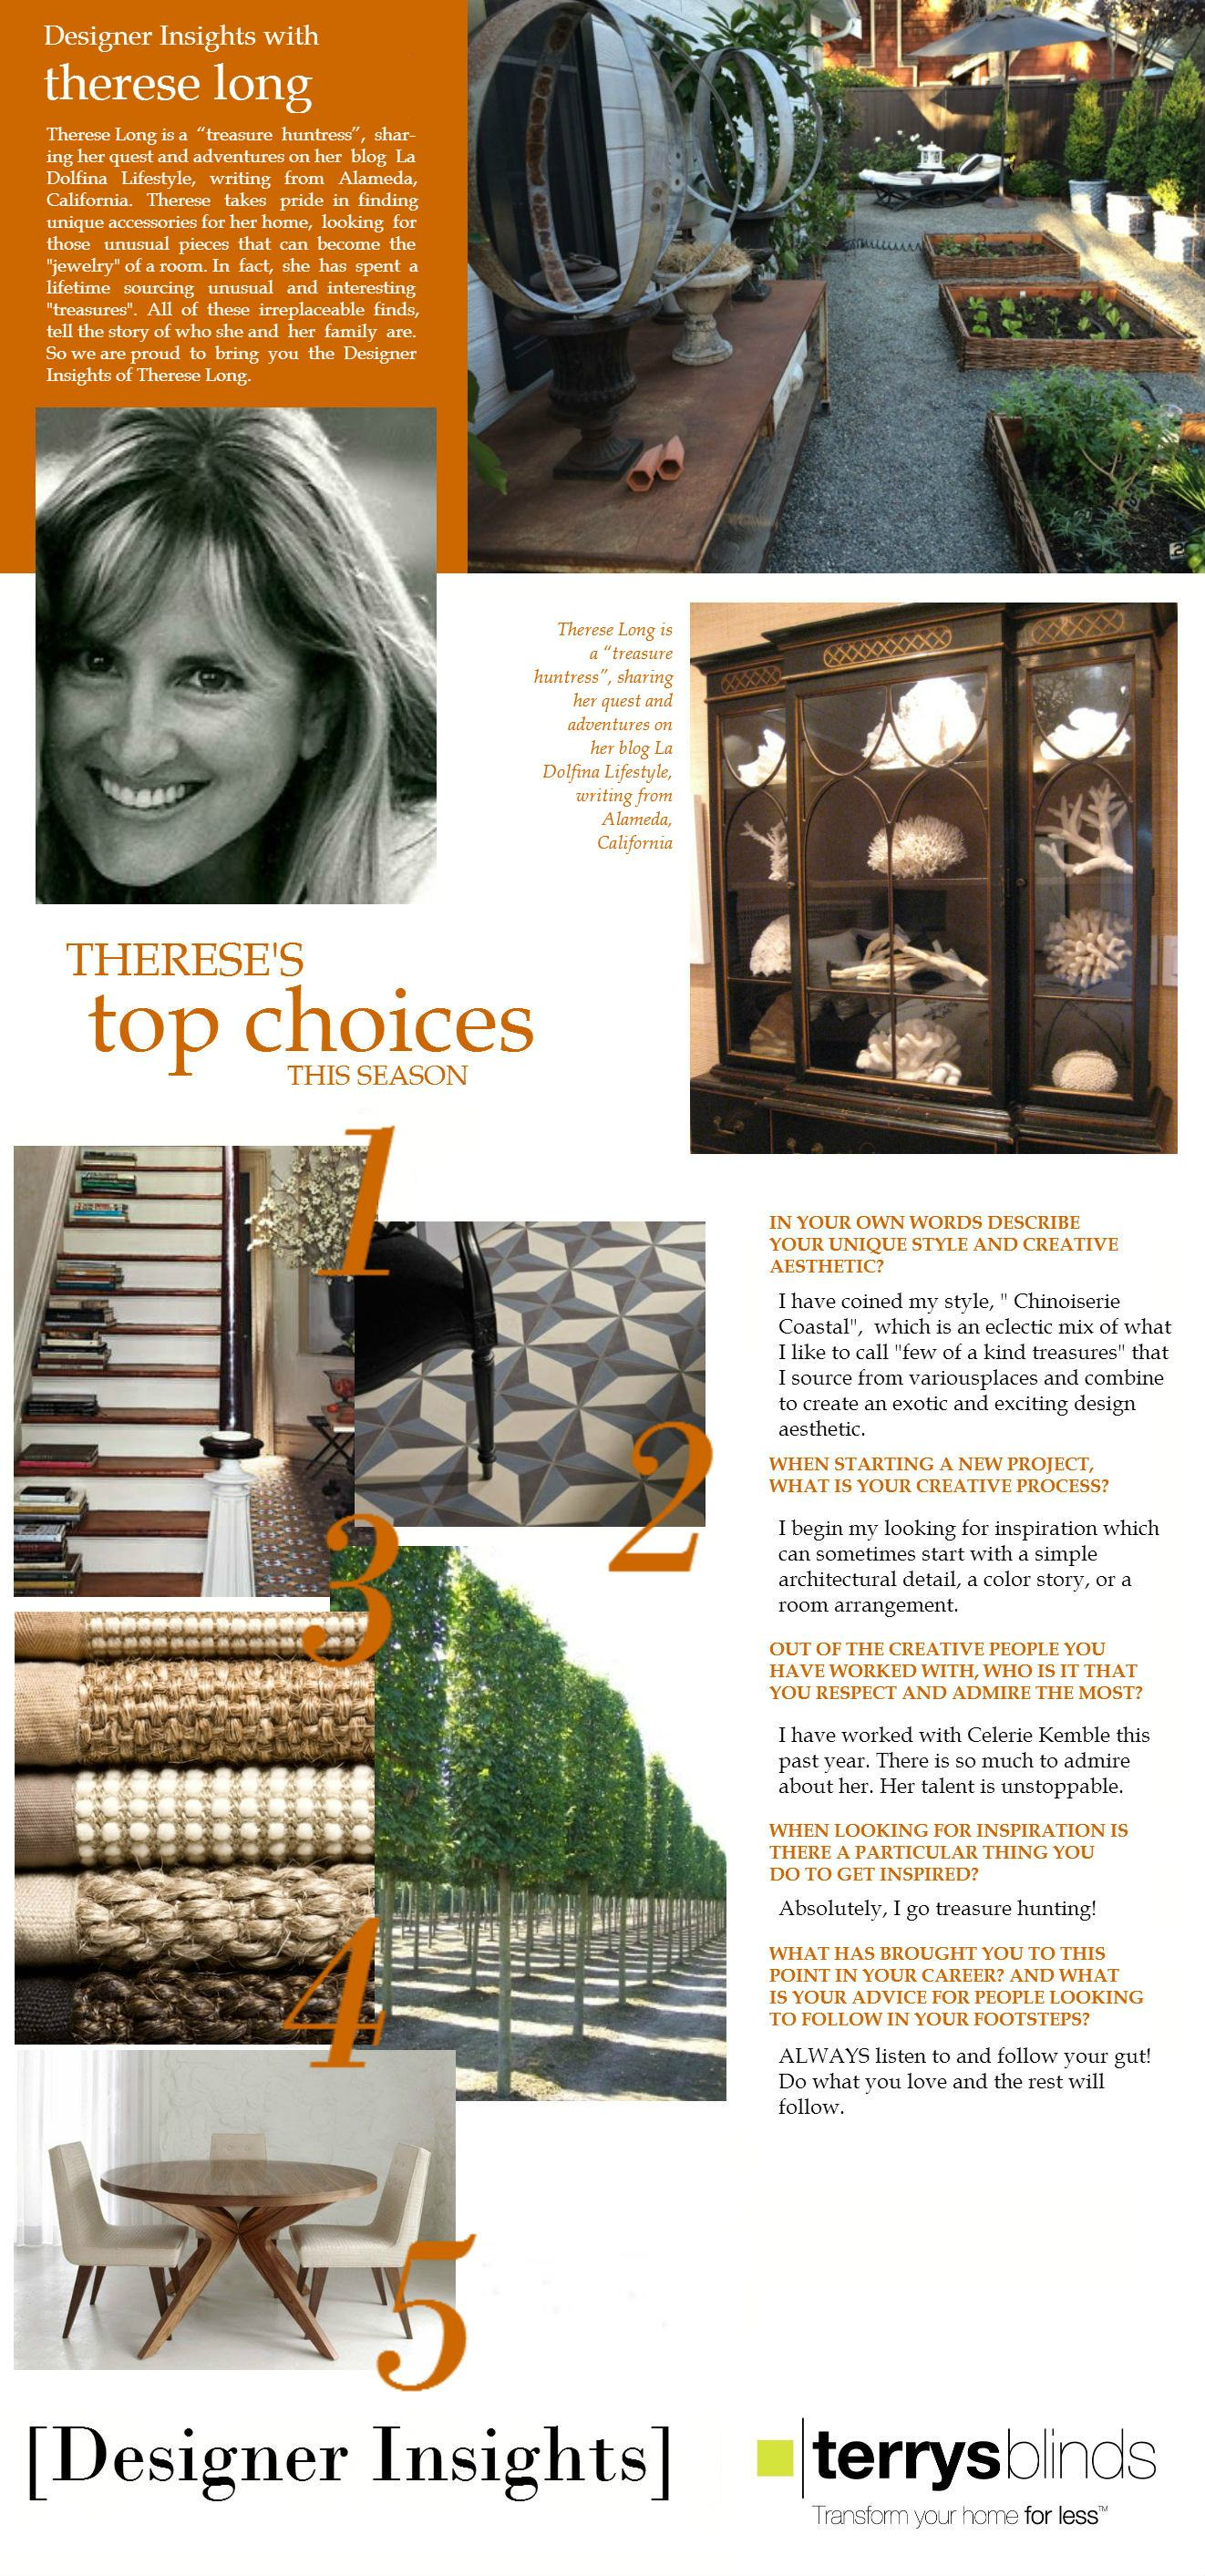 Designer Insights - Therese Long